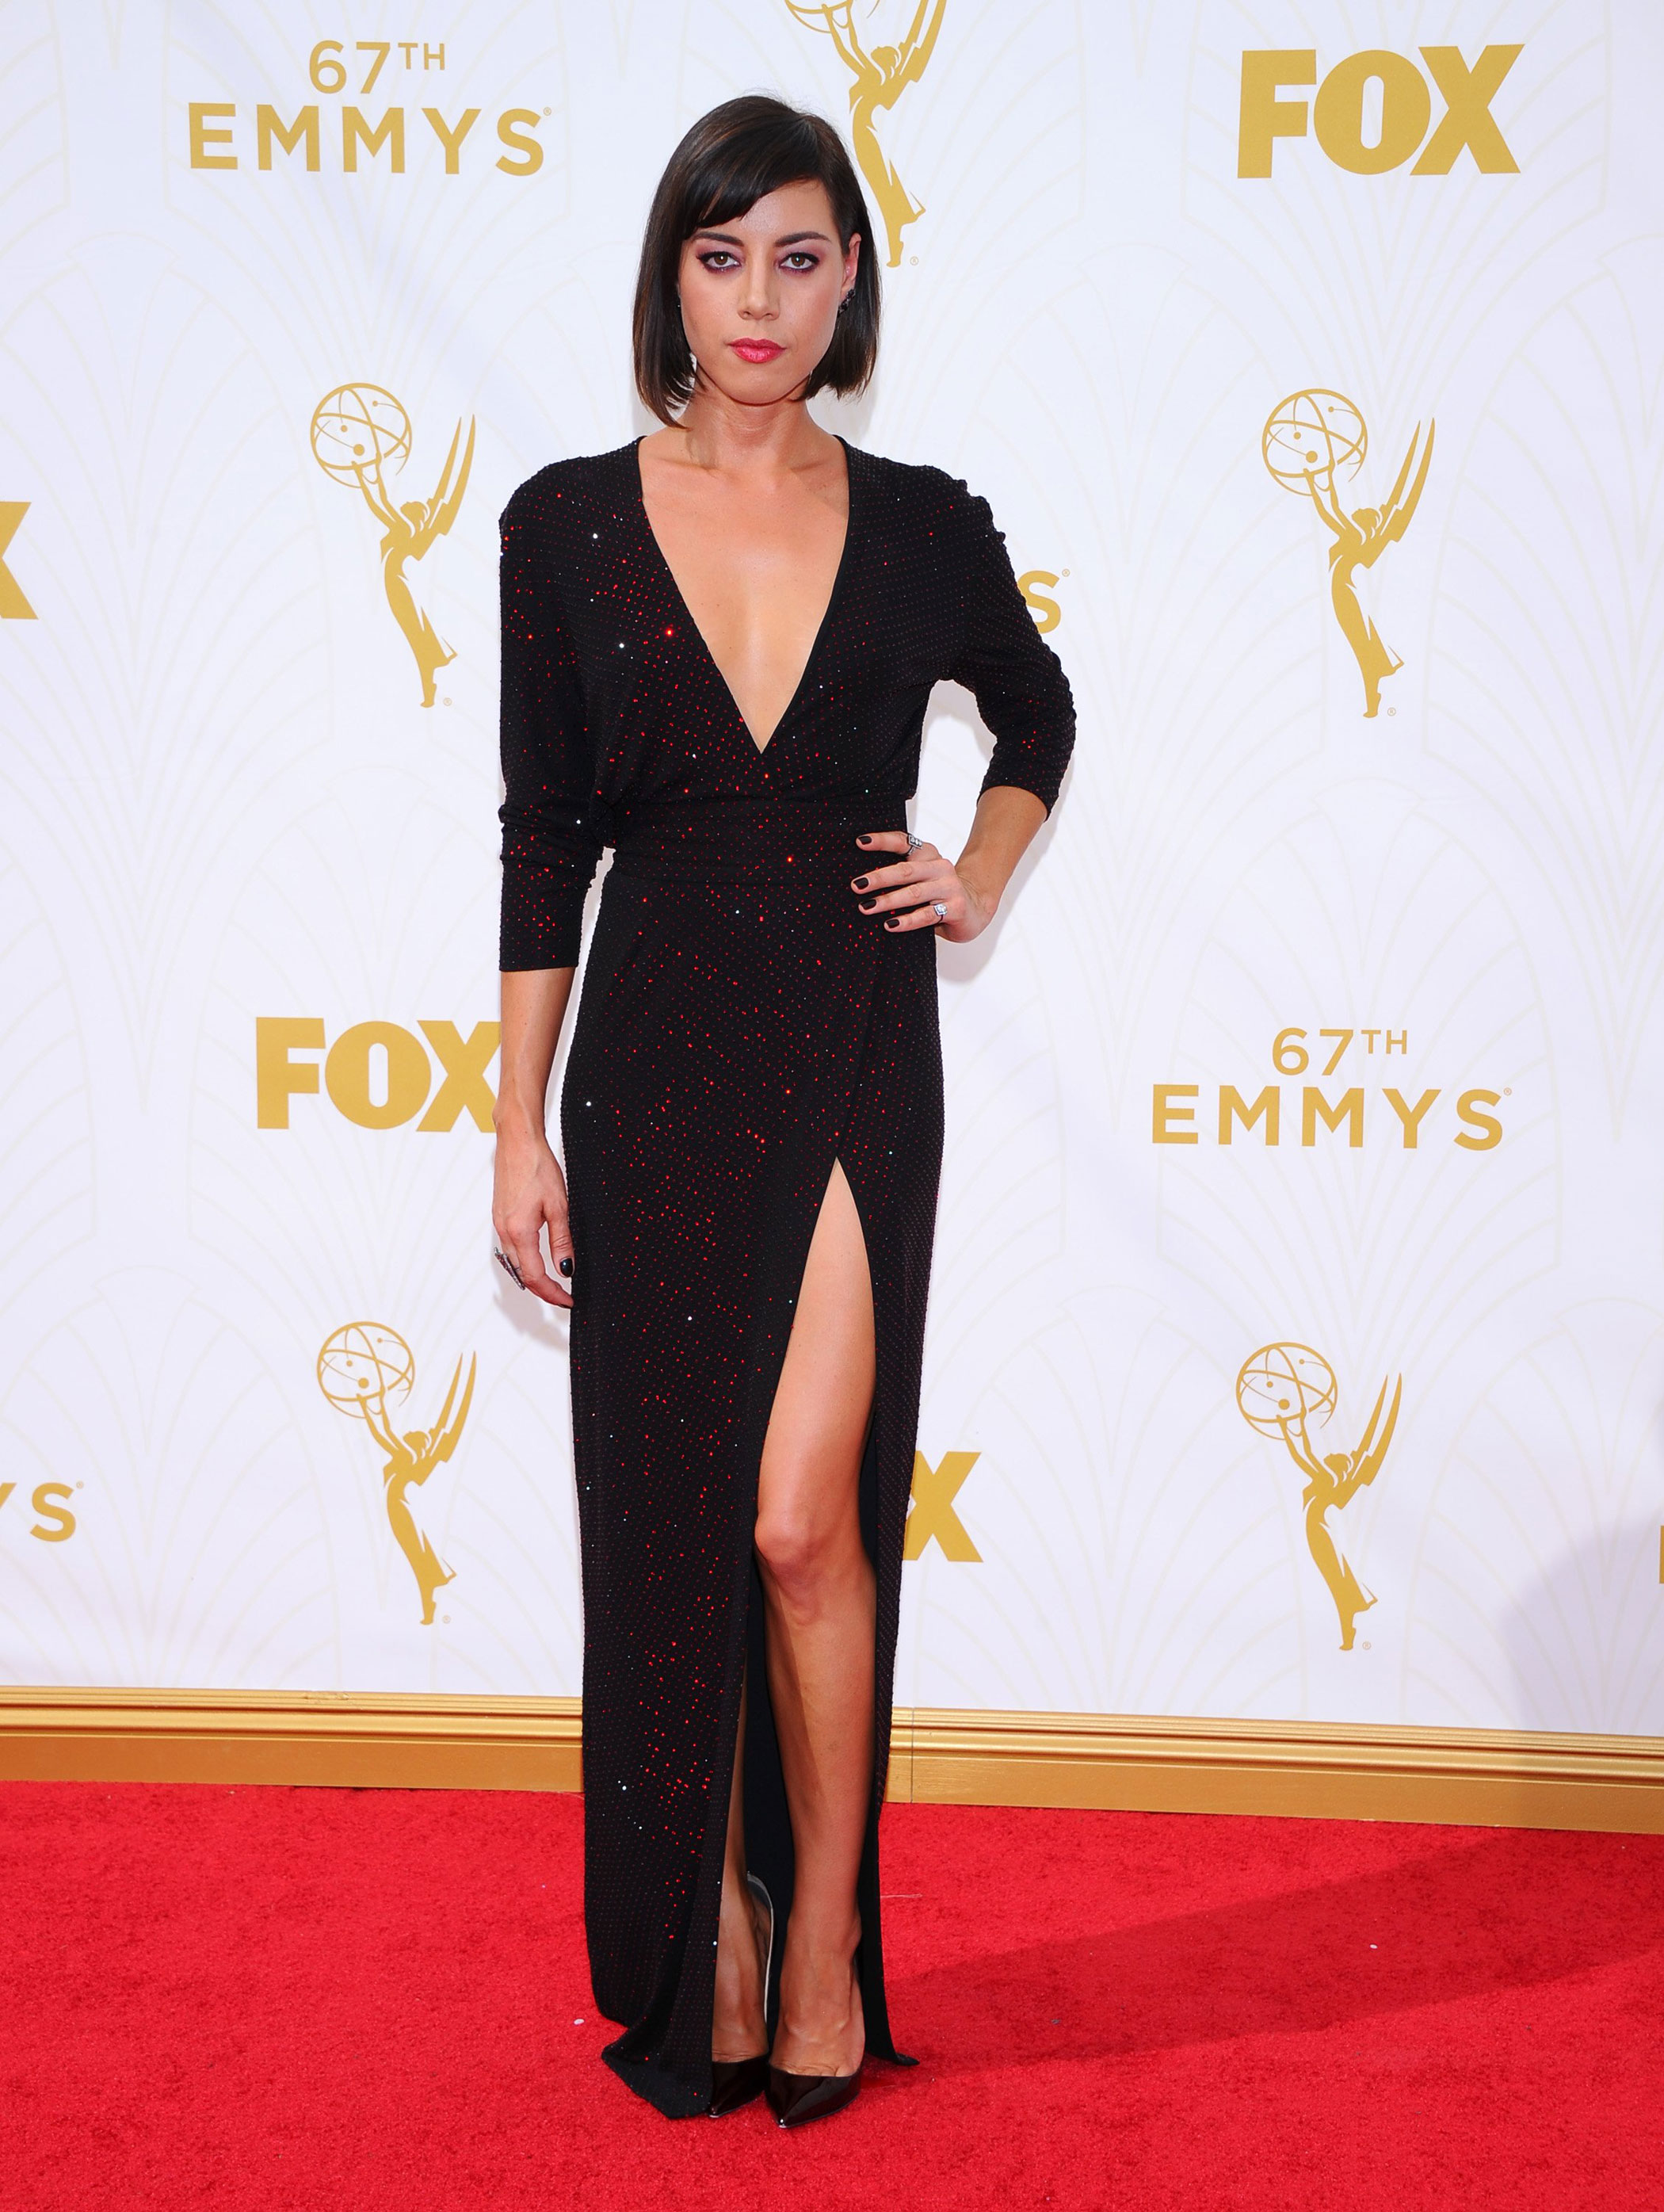 Aubrey Plaza at the 67th Emmy Award on Sept. 20, 2015 in Los Angeles.